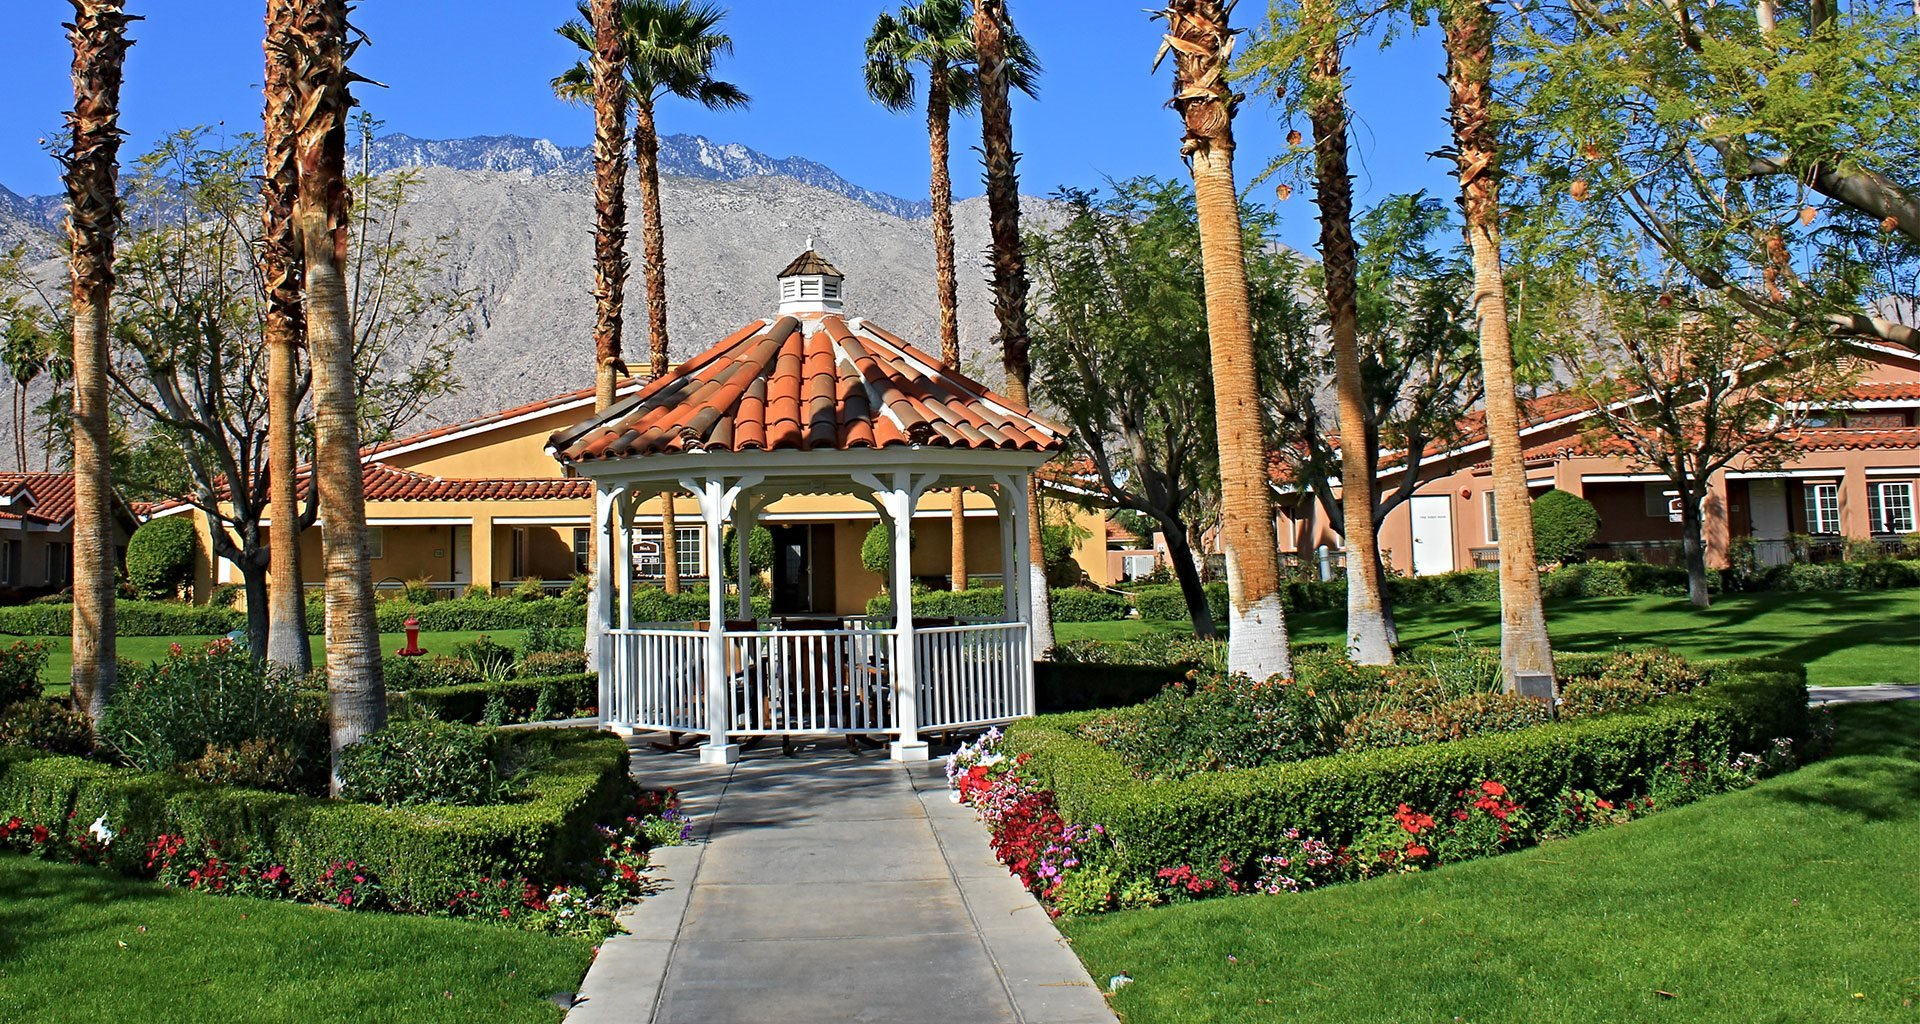 Landscaped Grounds at Pacifica Senior Living Palm Springs, Palm Springs, California